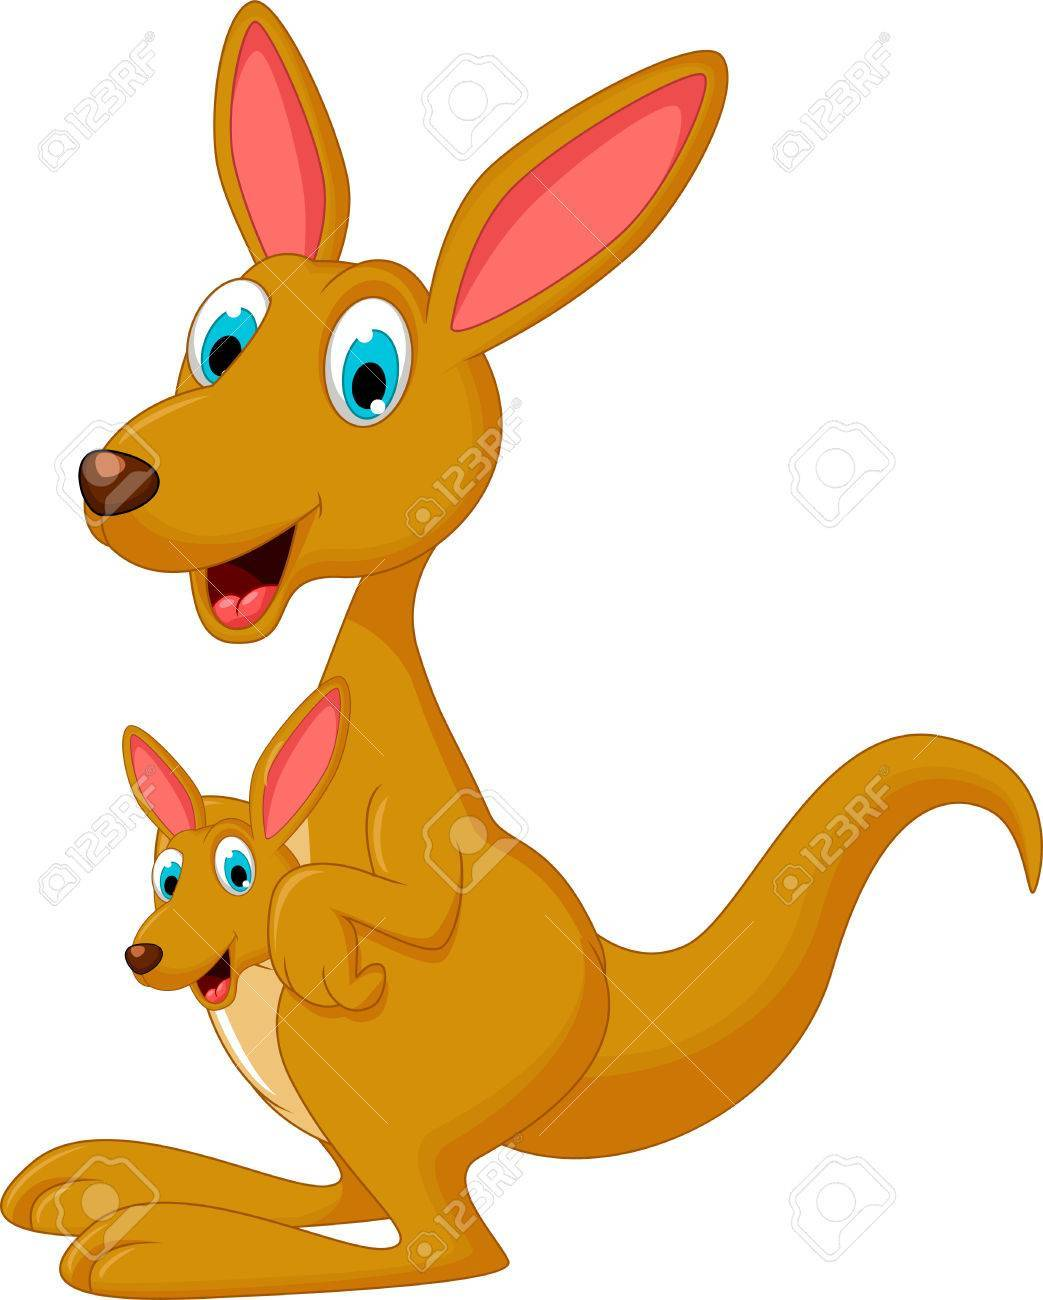 Kangaroo and joey clipart » Clipart Portal.